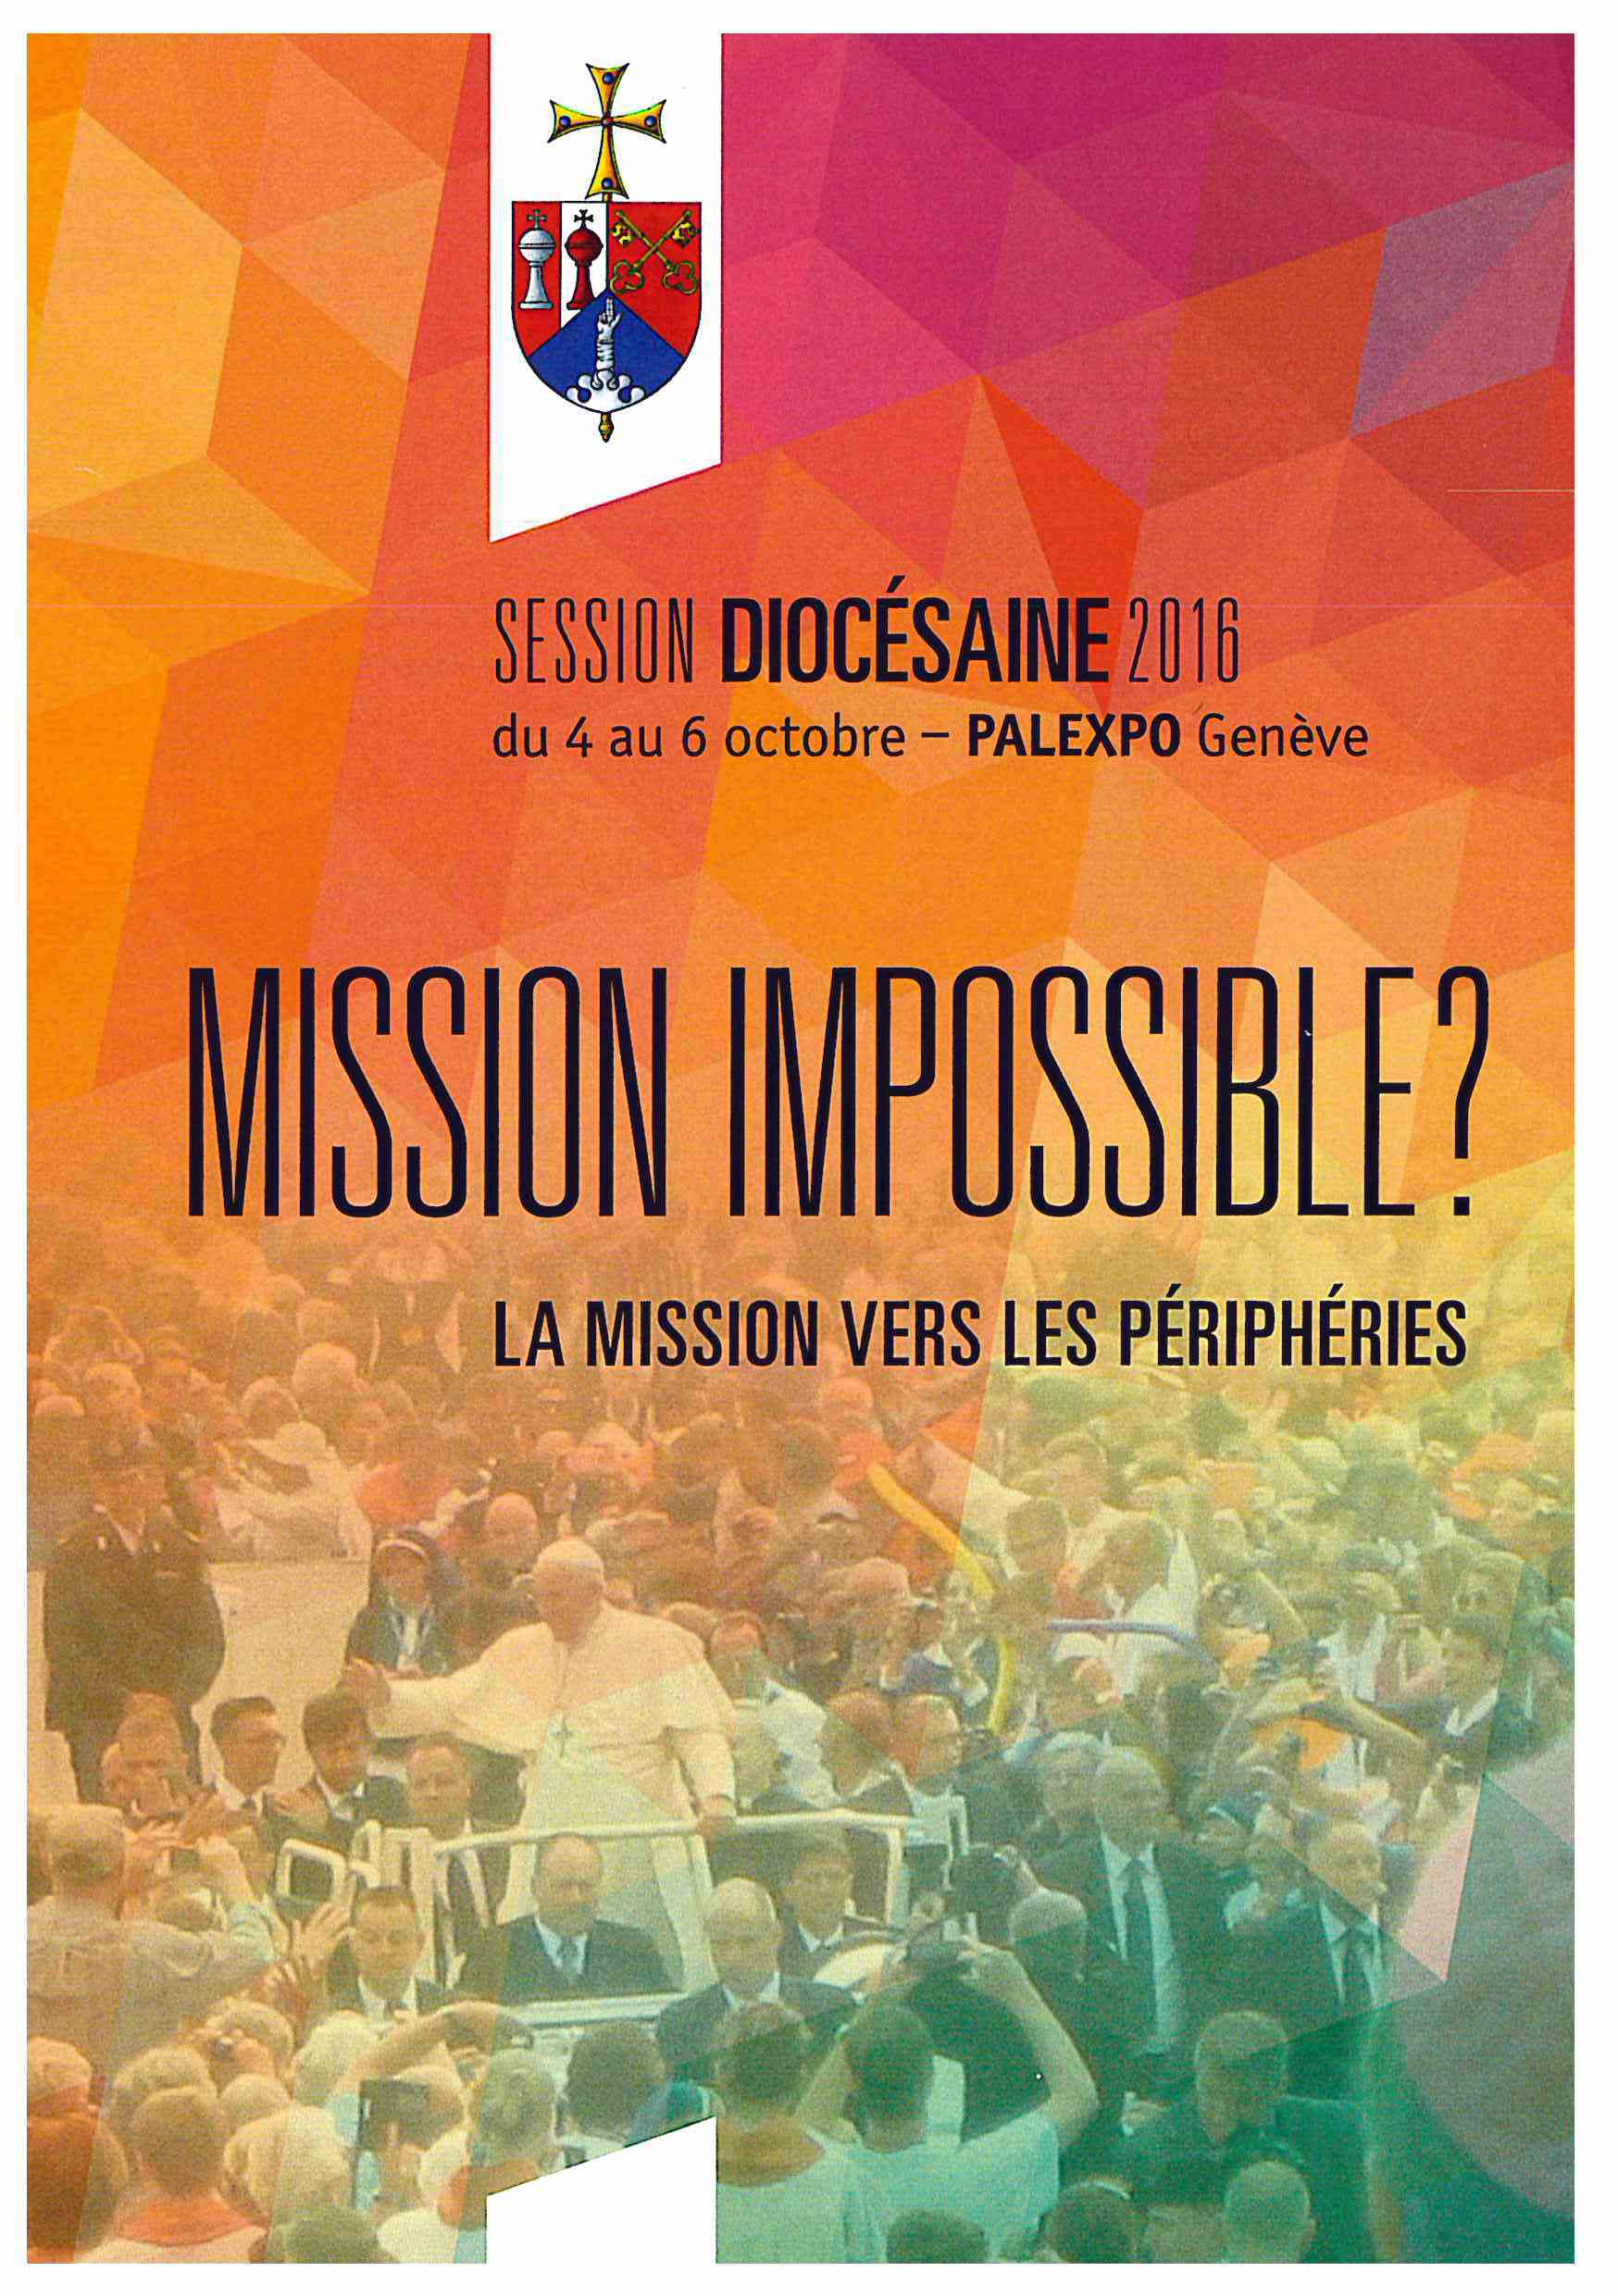 Sessiondiocesaine2016_flyer_Page_1